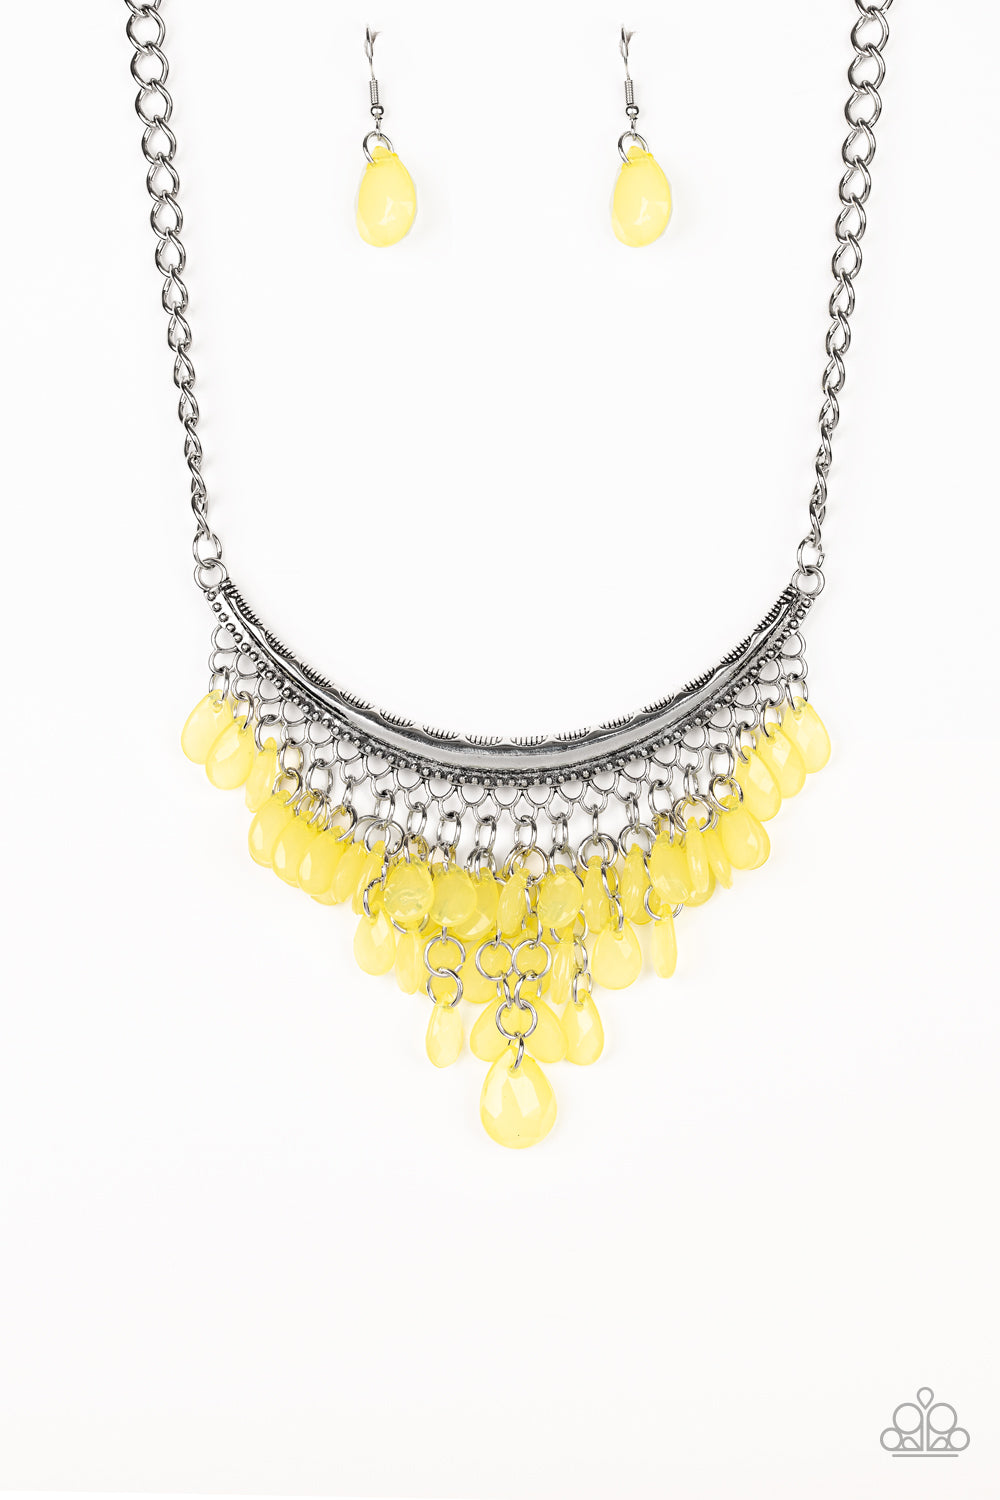 Paparazzi Necklace ~ Rio Rainfall - Yellow